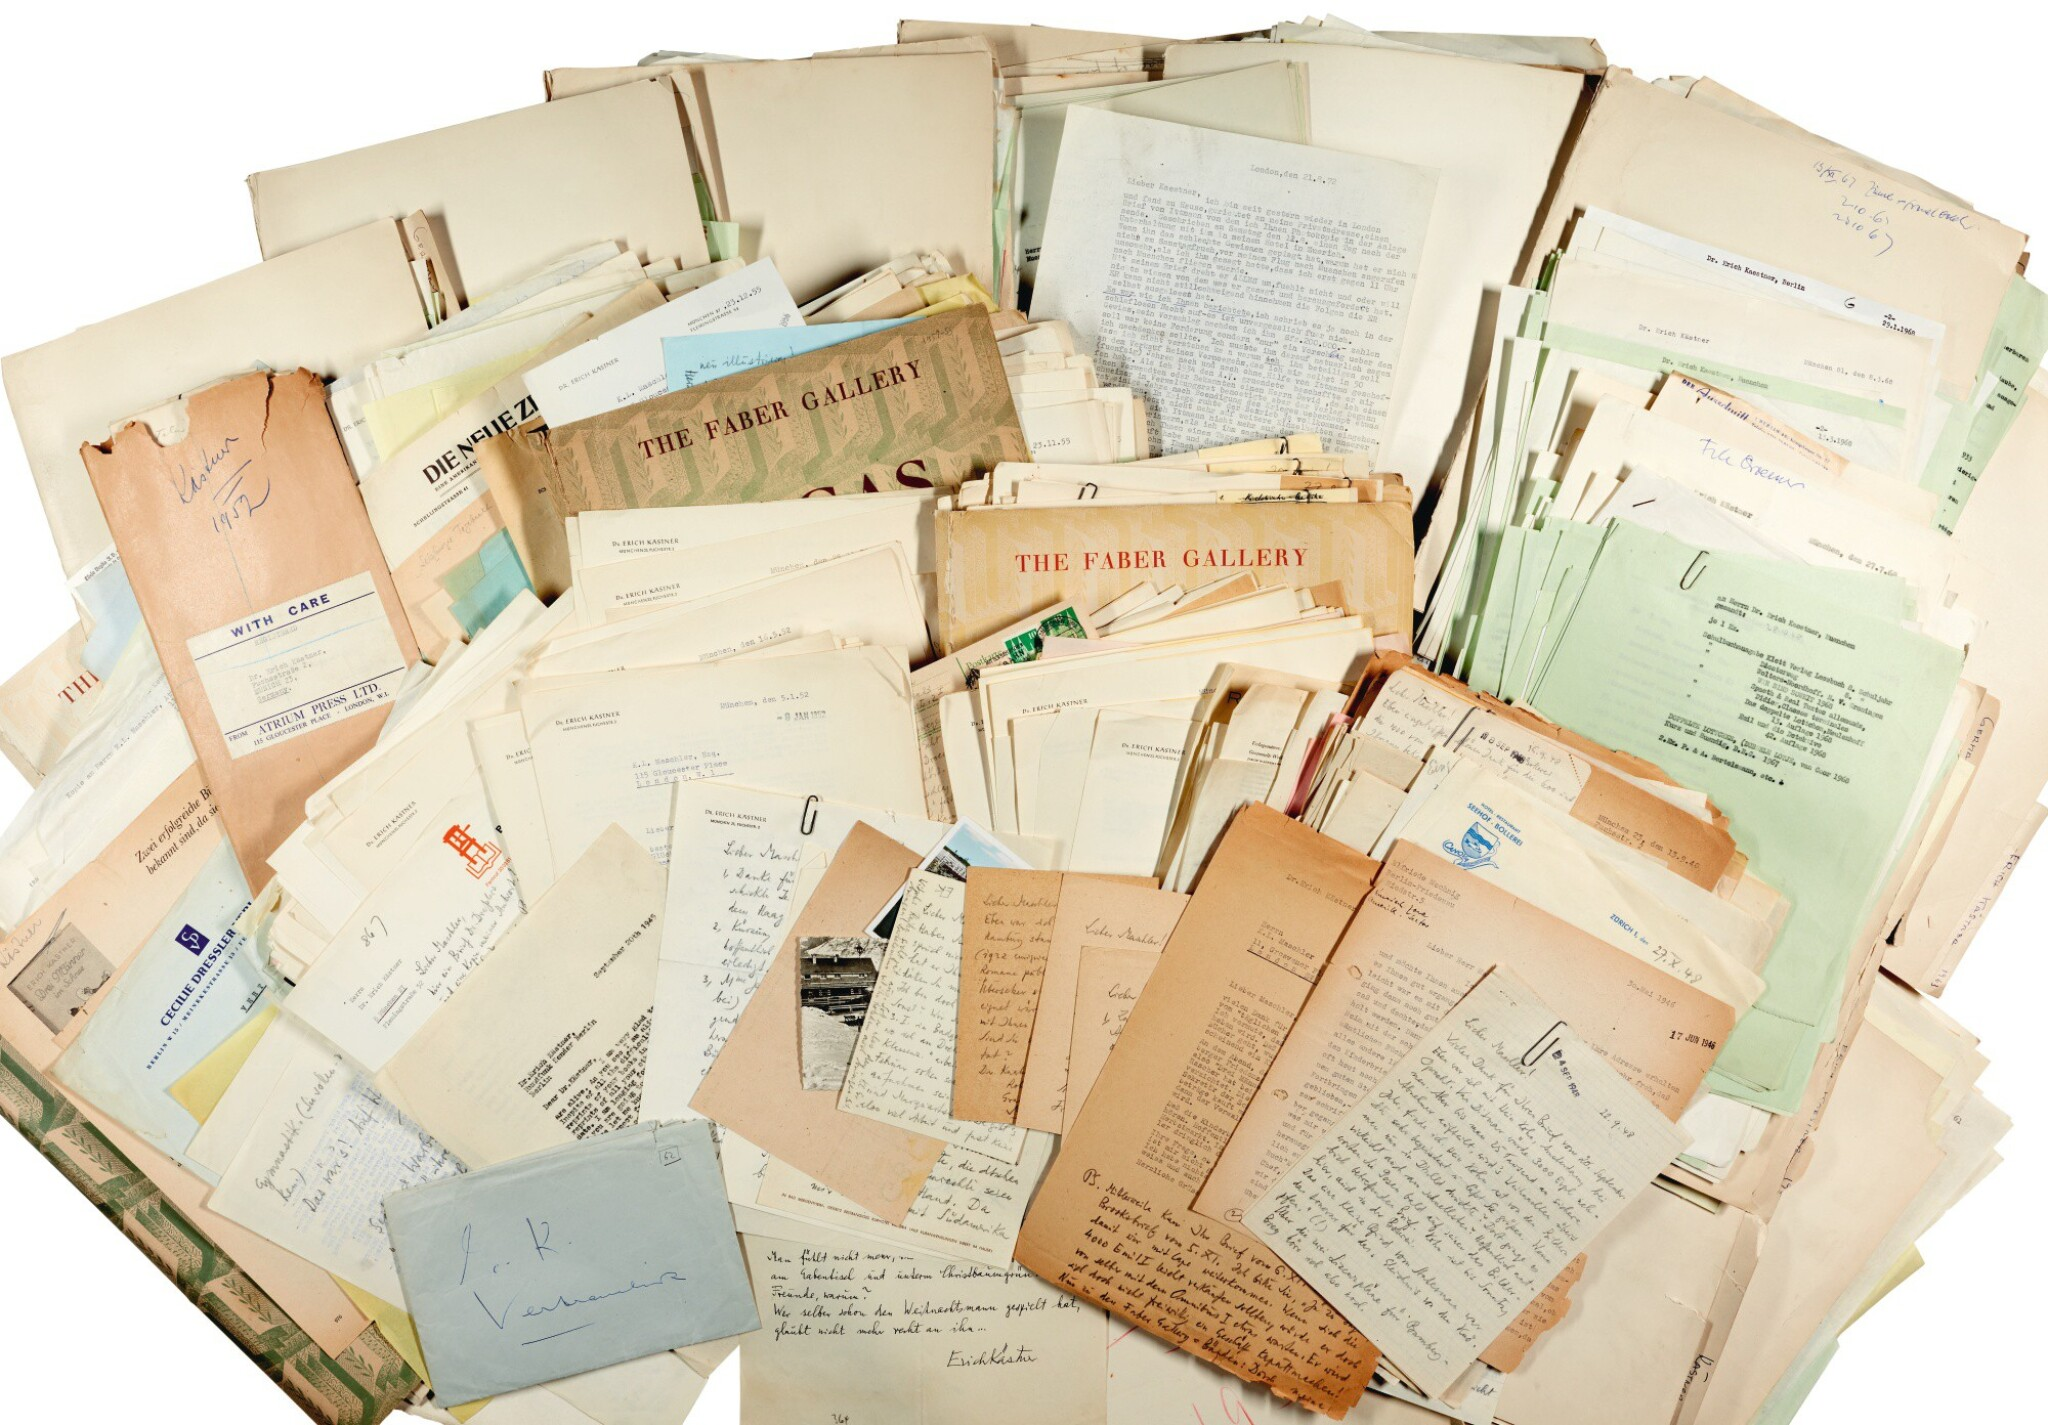 View 1 of Lot 27. E. Kästner. Highly important archive of correspondence to and from his publisher Kurt Maschler, 1945-1972.